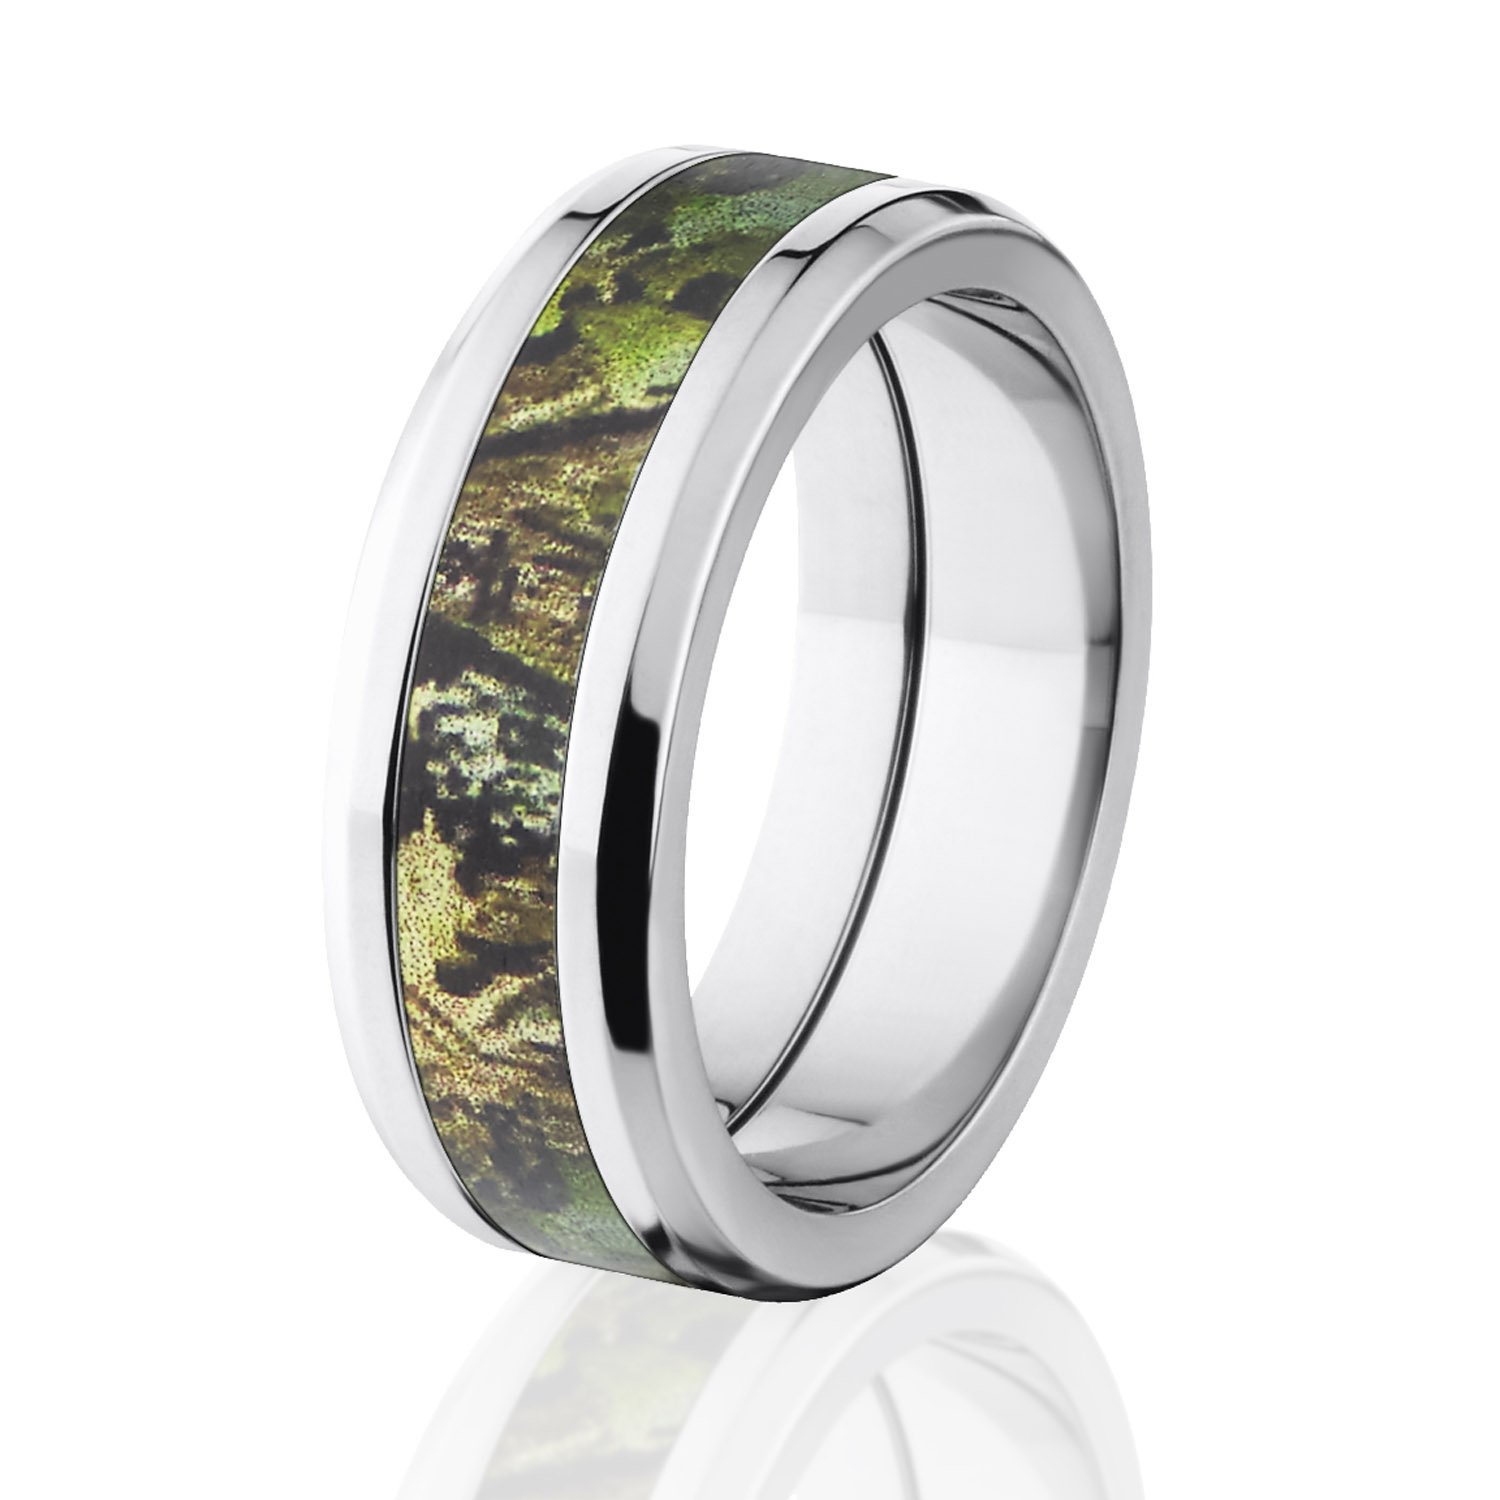 pinterest deer and sets outdoor up his camouflage her pink ring best oak collections mossy set rings track thejewelrys wedding engagement matching images camo on break